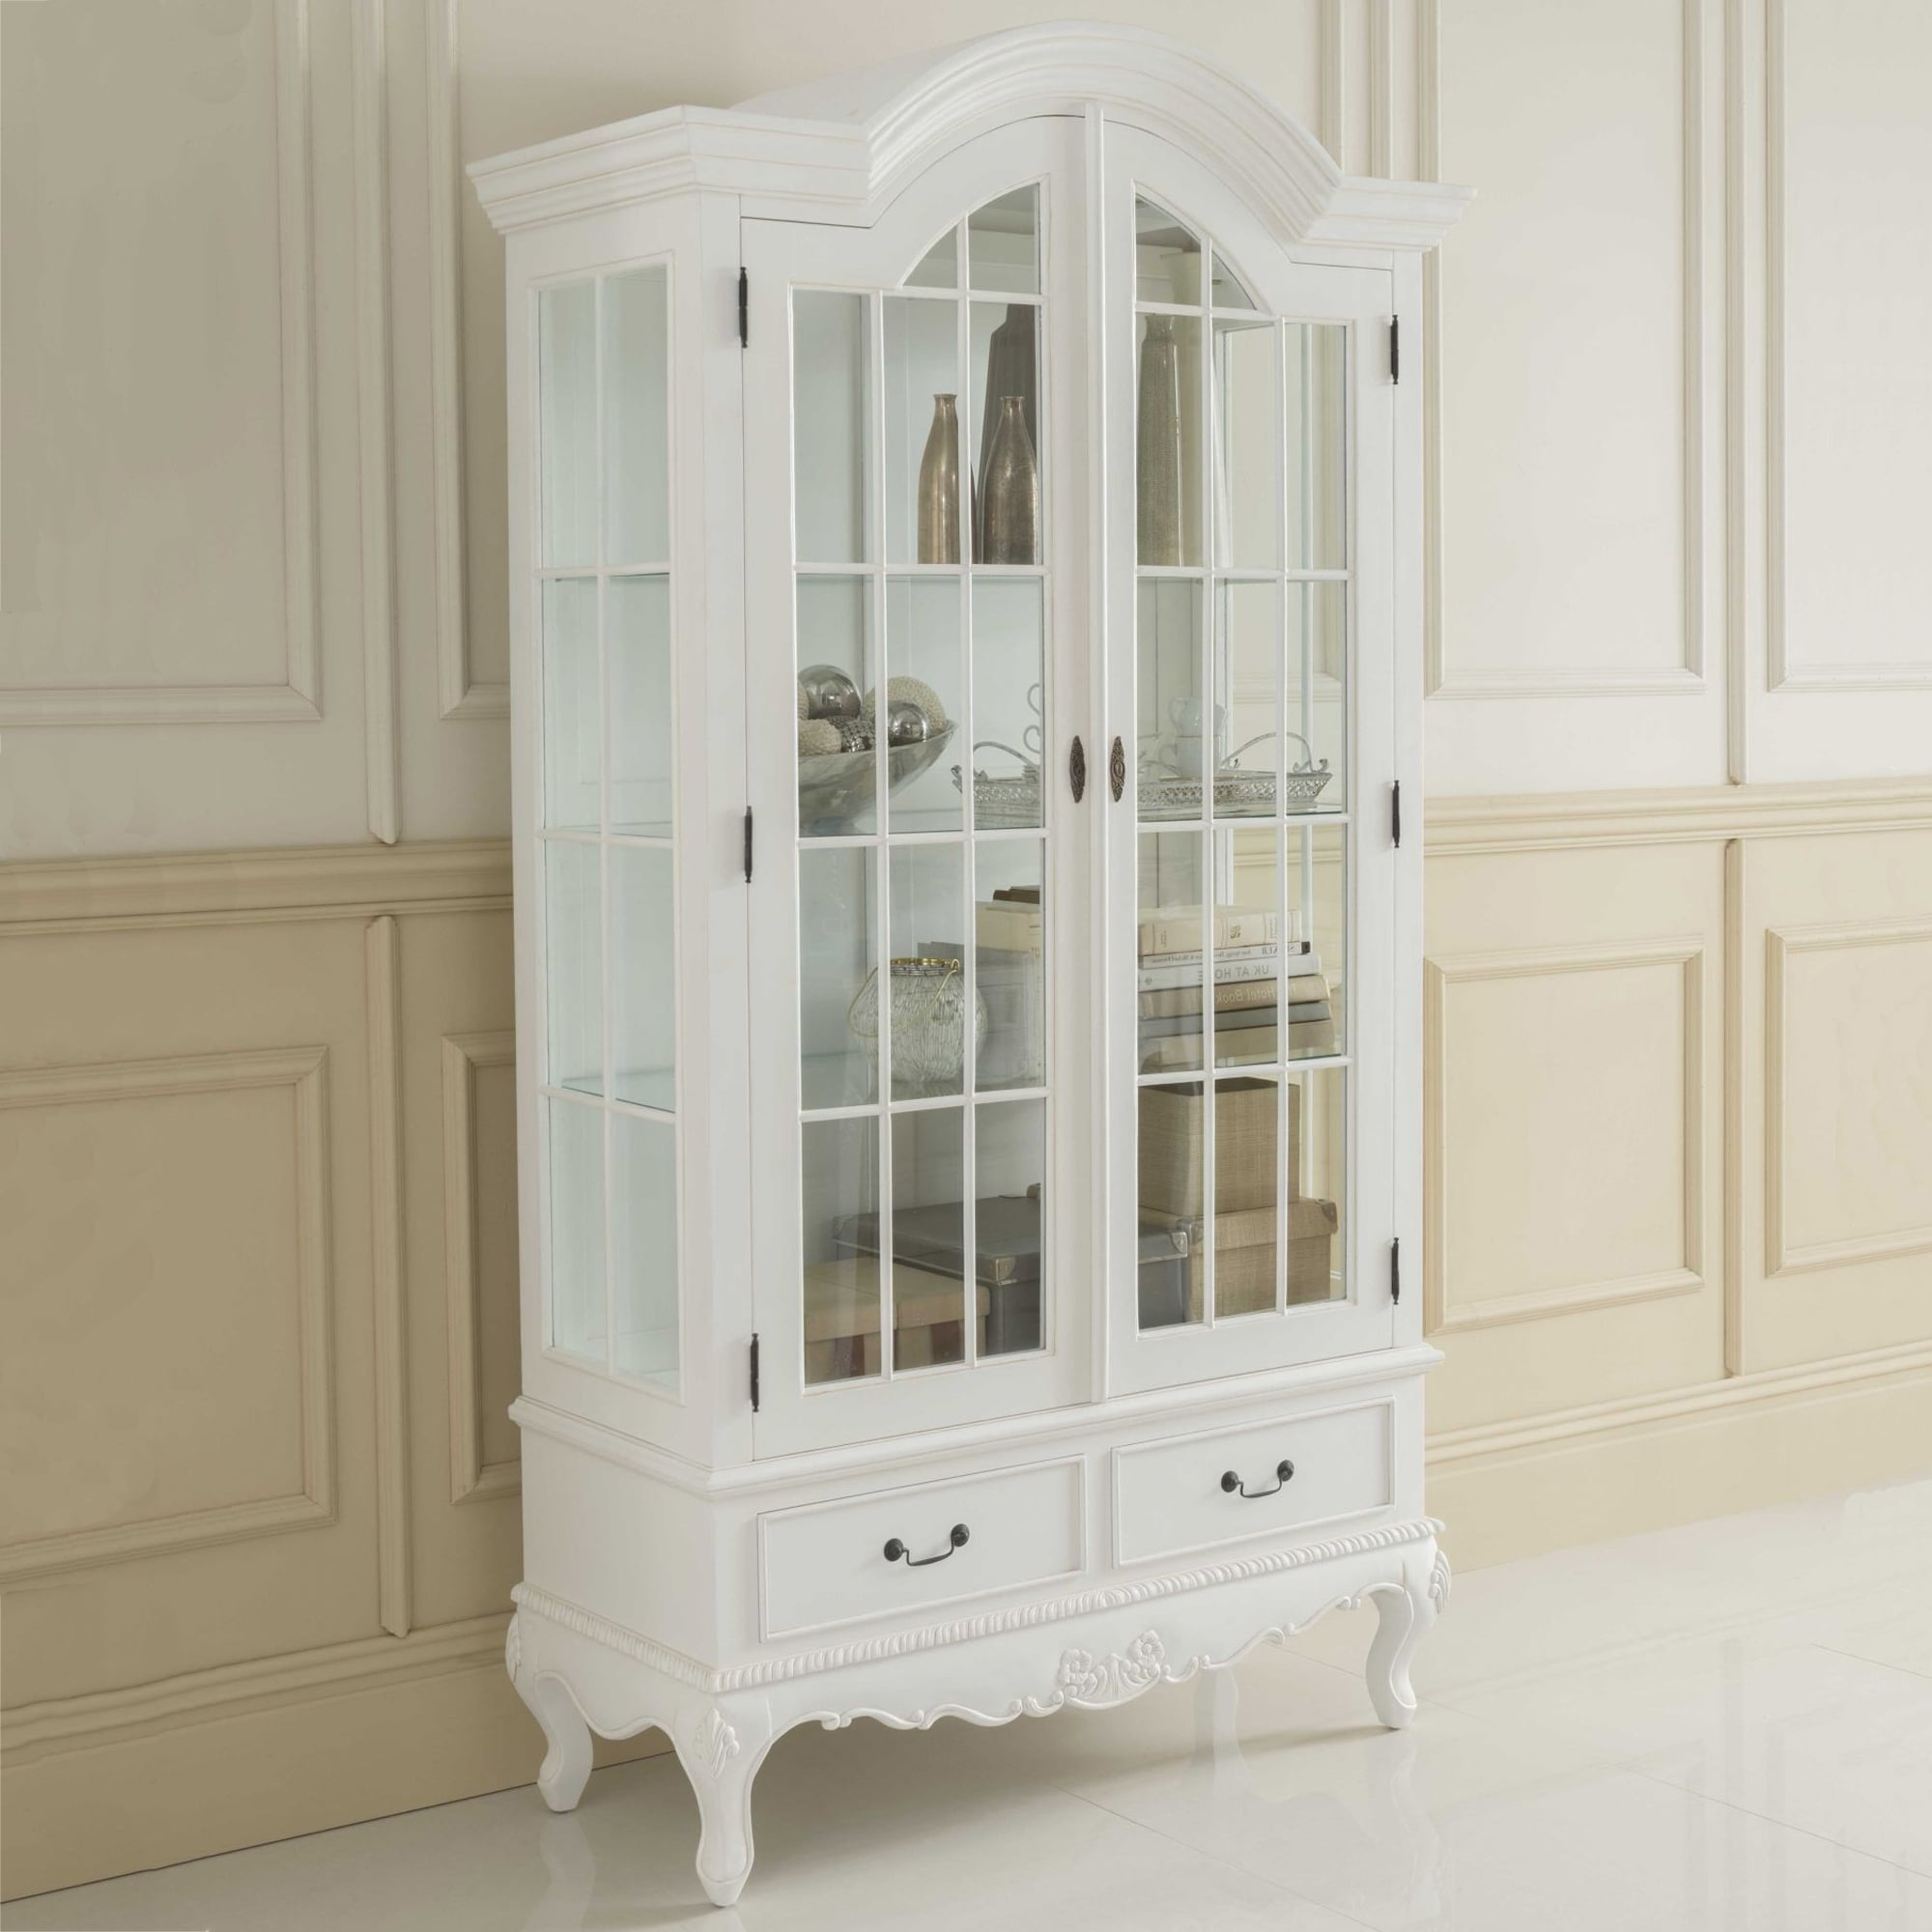 Enhance Your Home With These Display Cabinet Ideashomes Direct 365 Blog